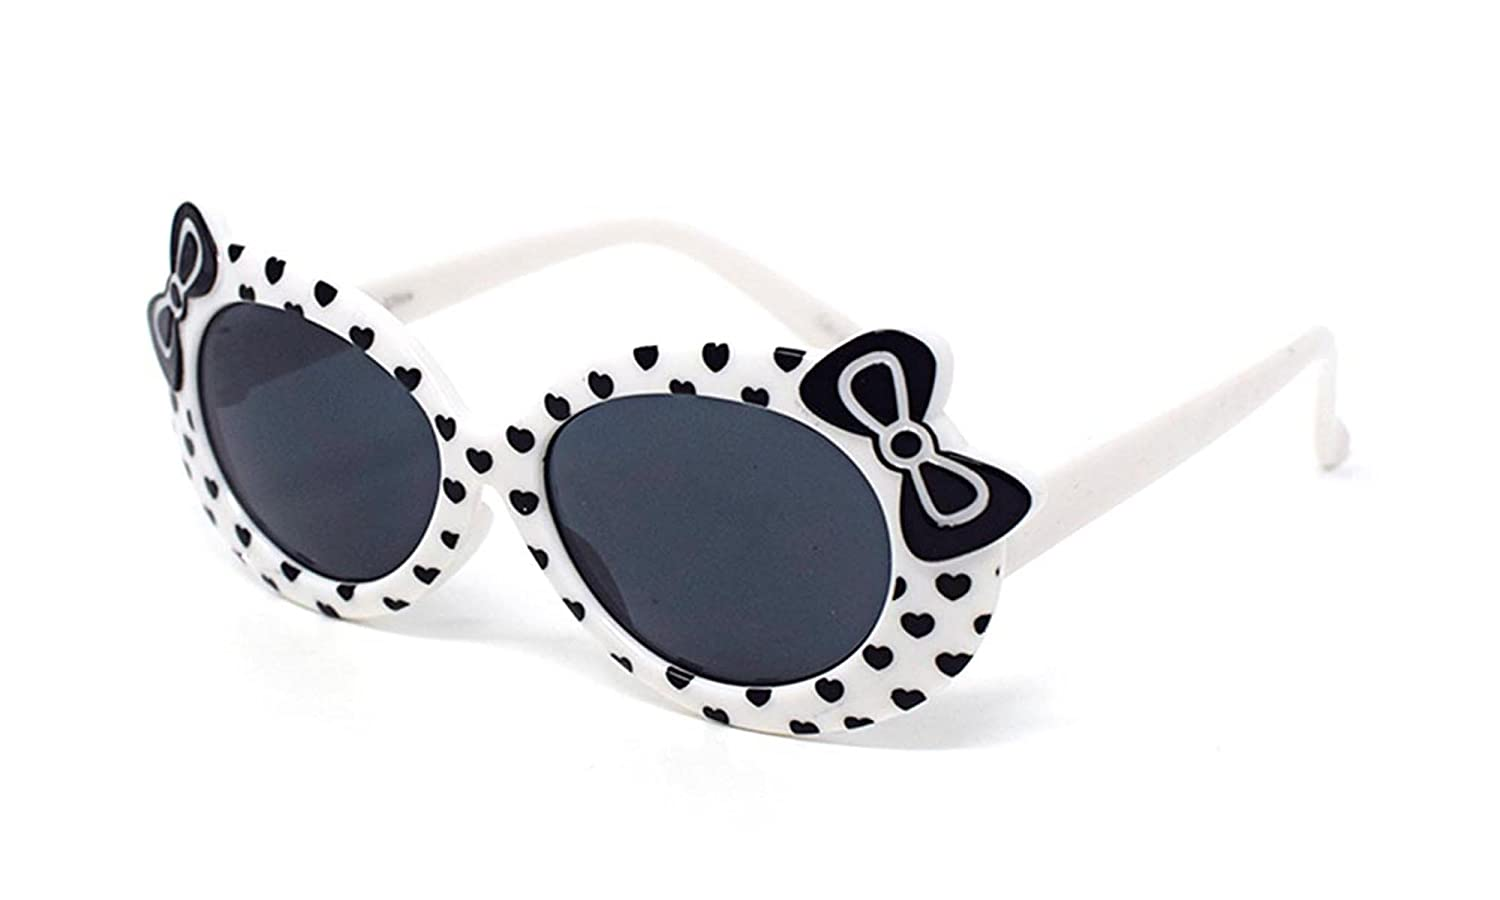 e1d814a871 2 x White Coloured Childrens Kids Girls Stylish Cute Designer Style  Sunglasses with a Bow and